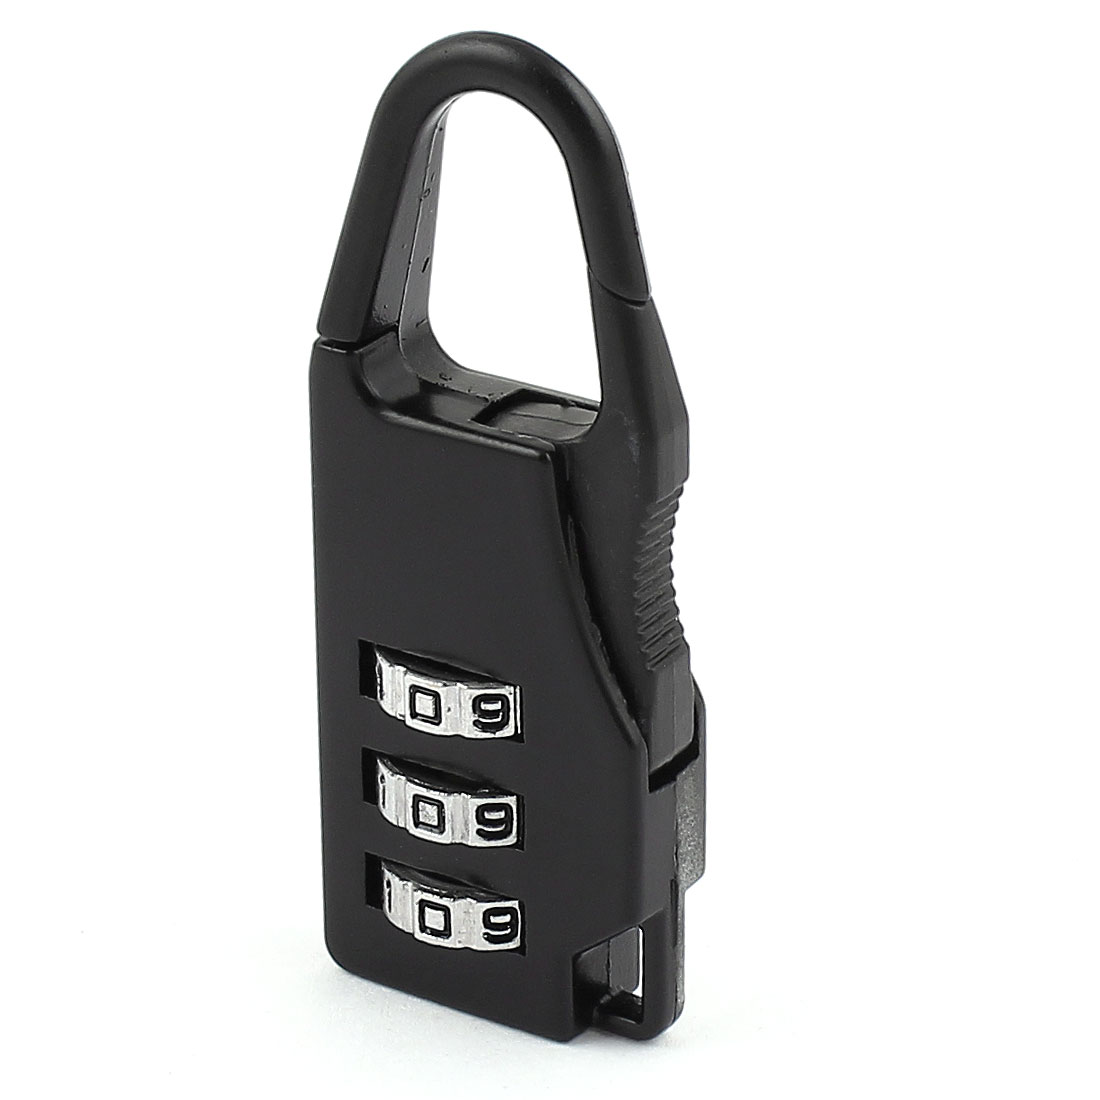 Baggage Packsack 3 Digits Security Combination Dial Lock Password Padlock Black